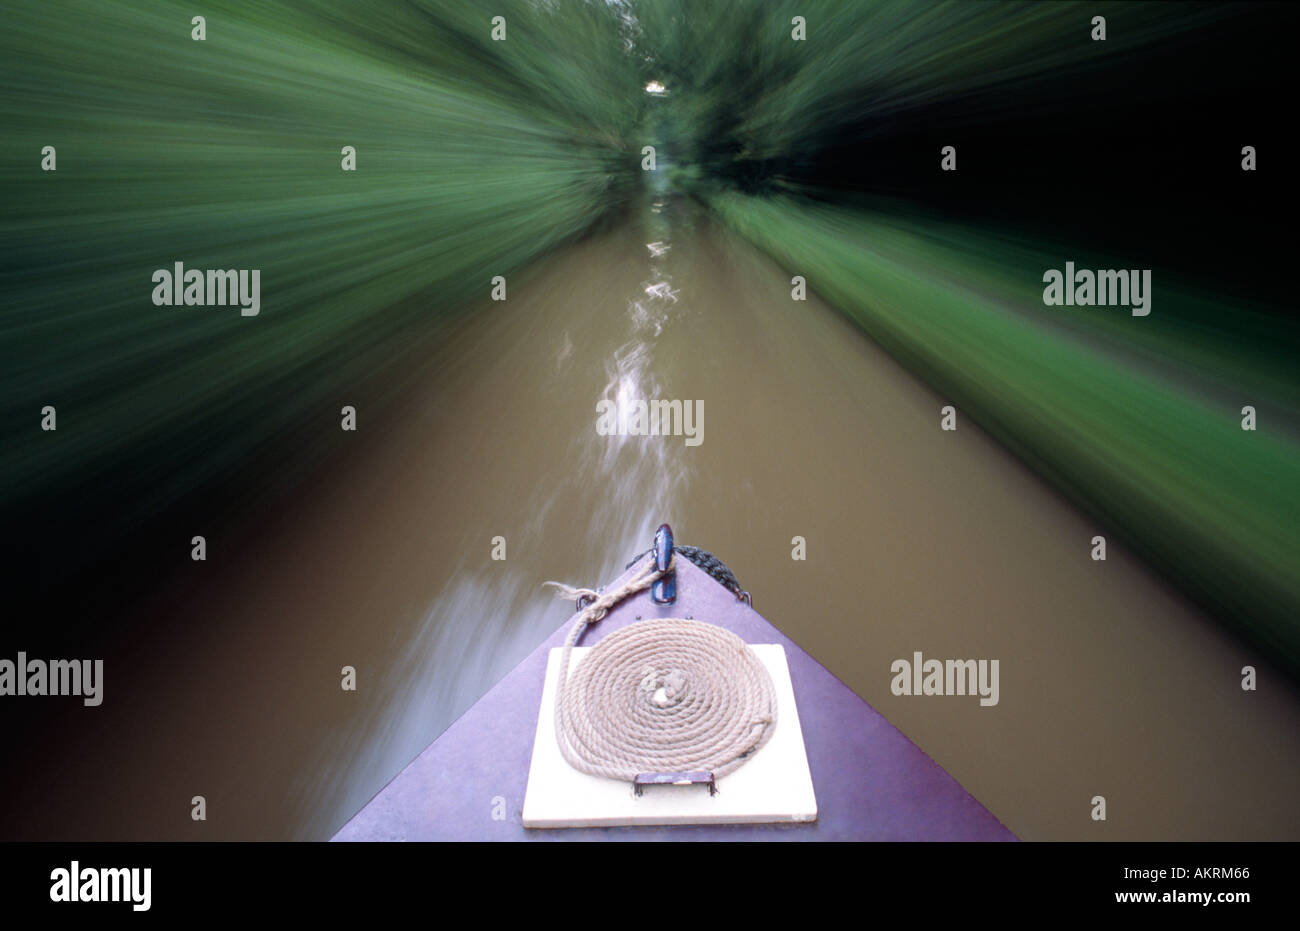 PICTURE CREDIT Doug Blane narrowboat navigating along the English canal system - Stock Image